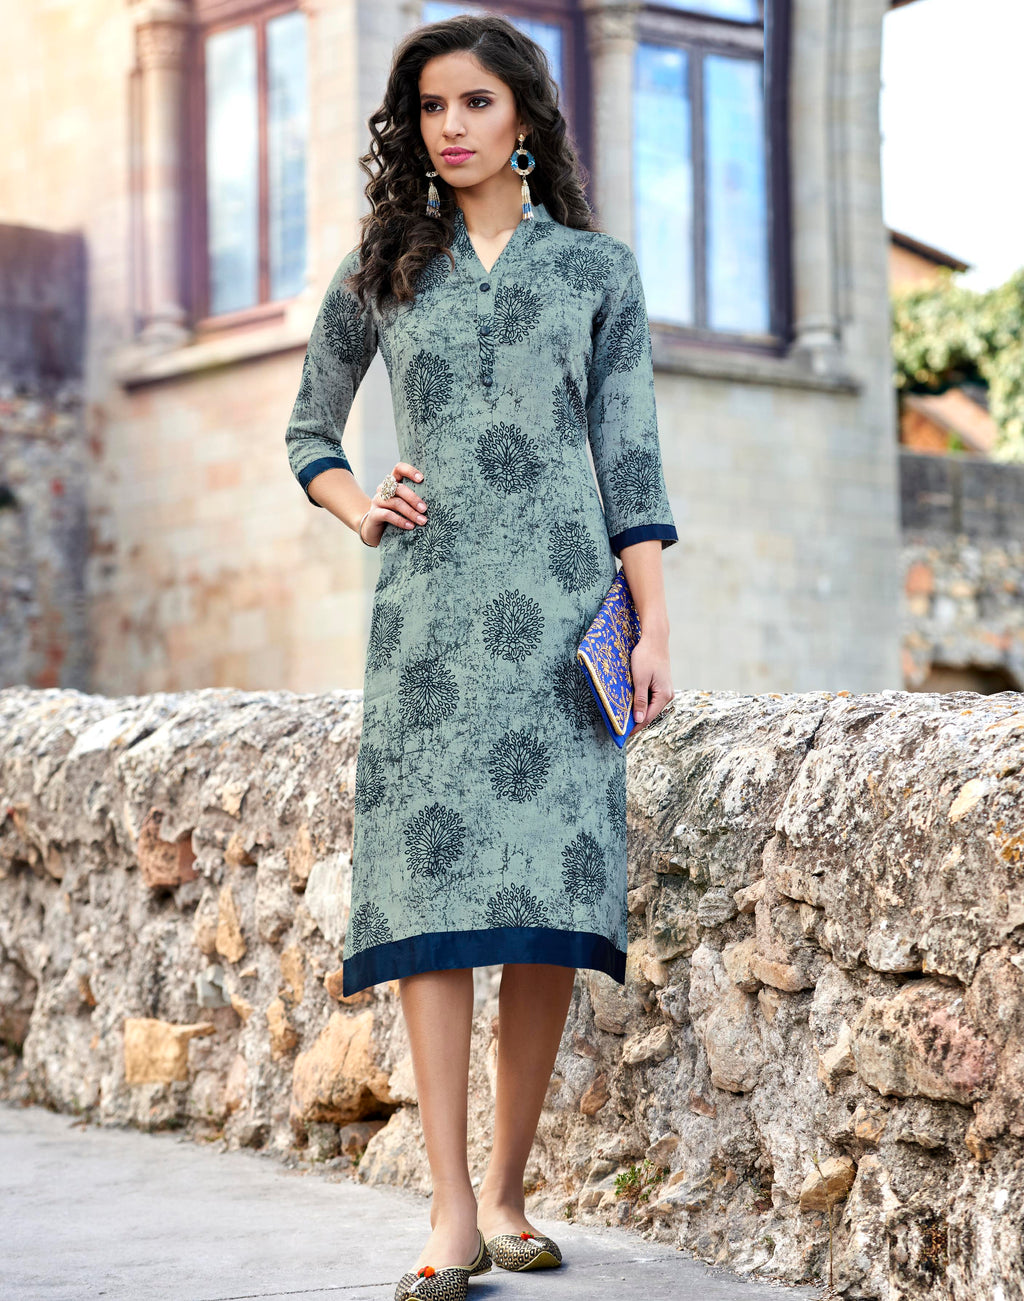 Shades Of Blue Color Rayon Readymade Party Wear Kurtis ( Sizes-40,42,44) Tanuza Jessica Catlog SJ-10464